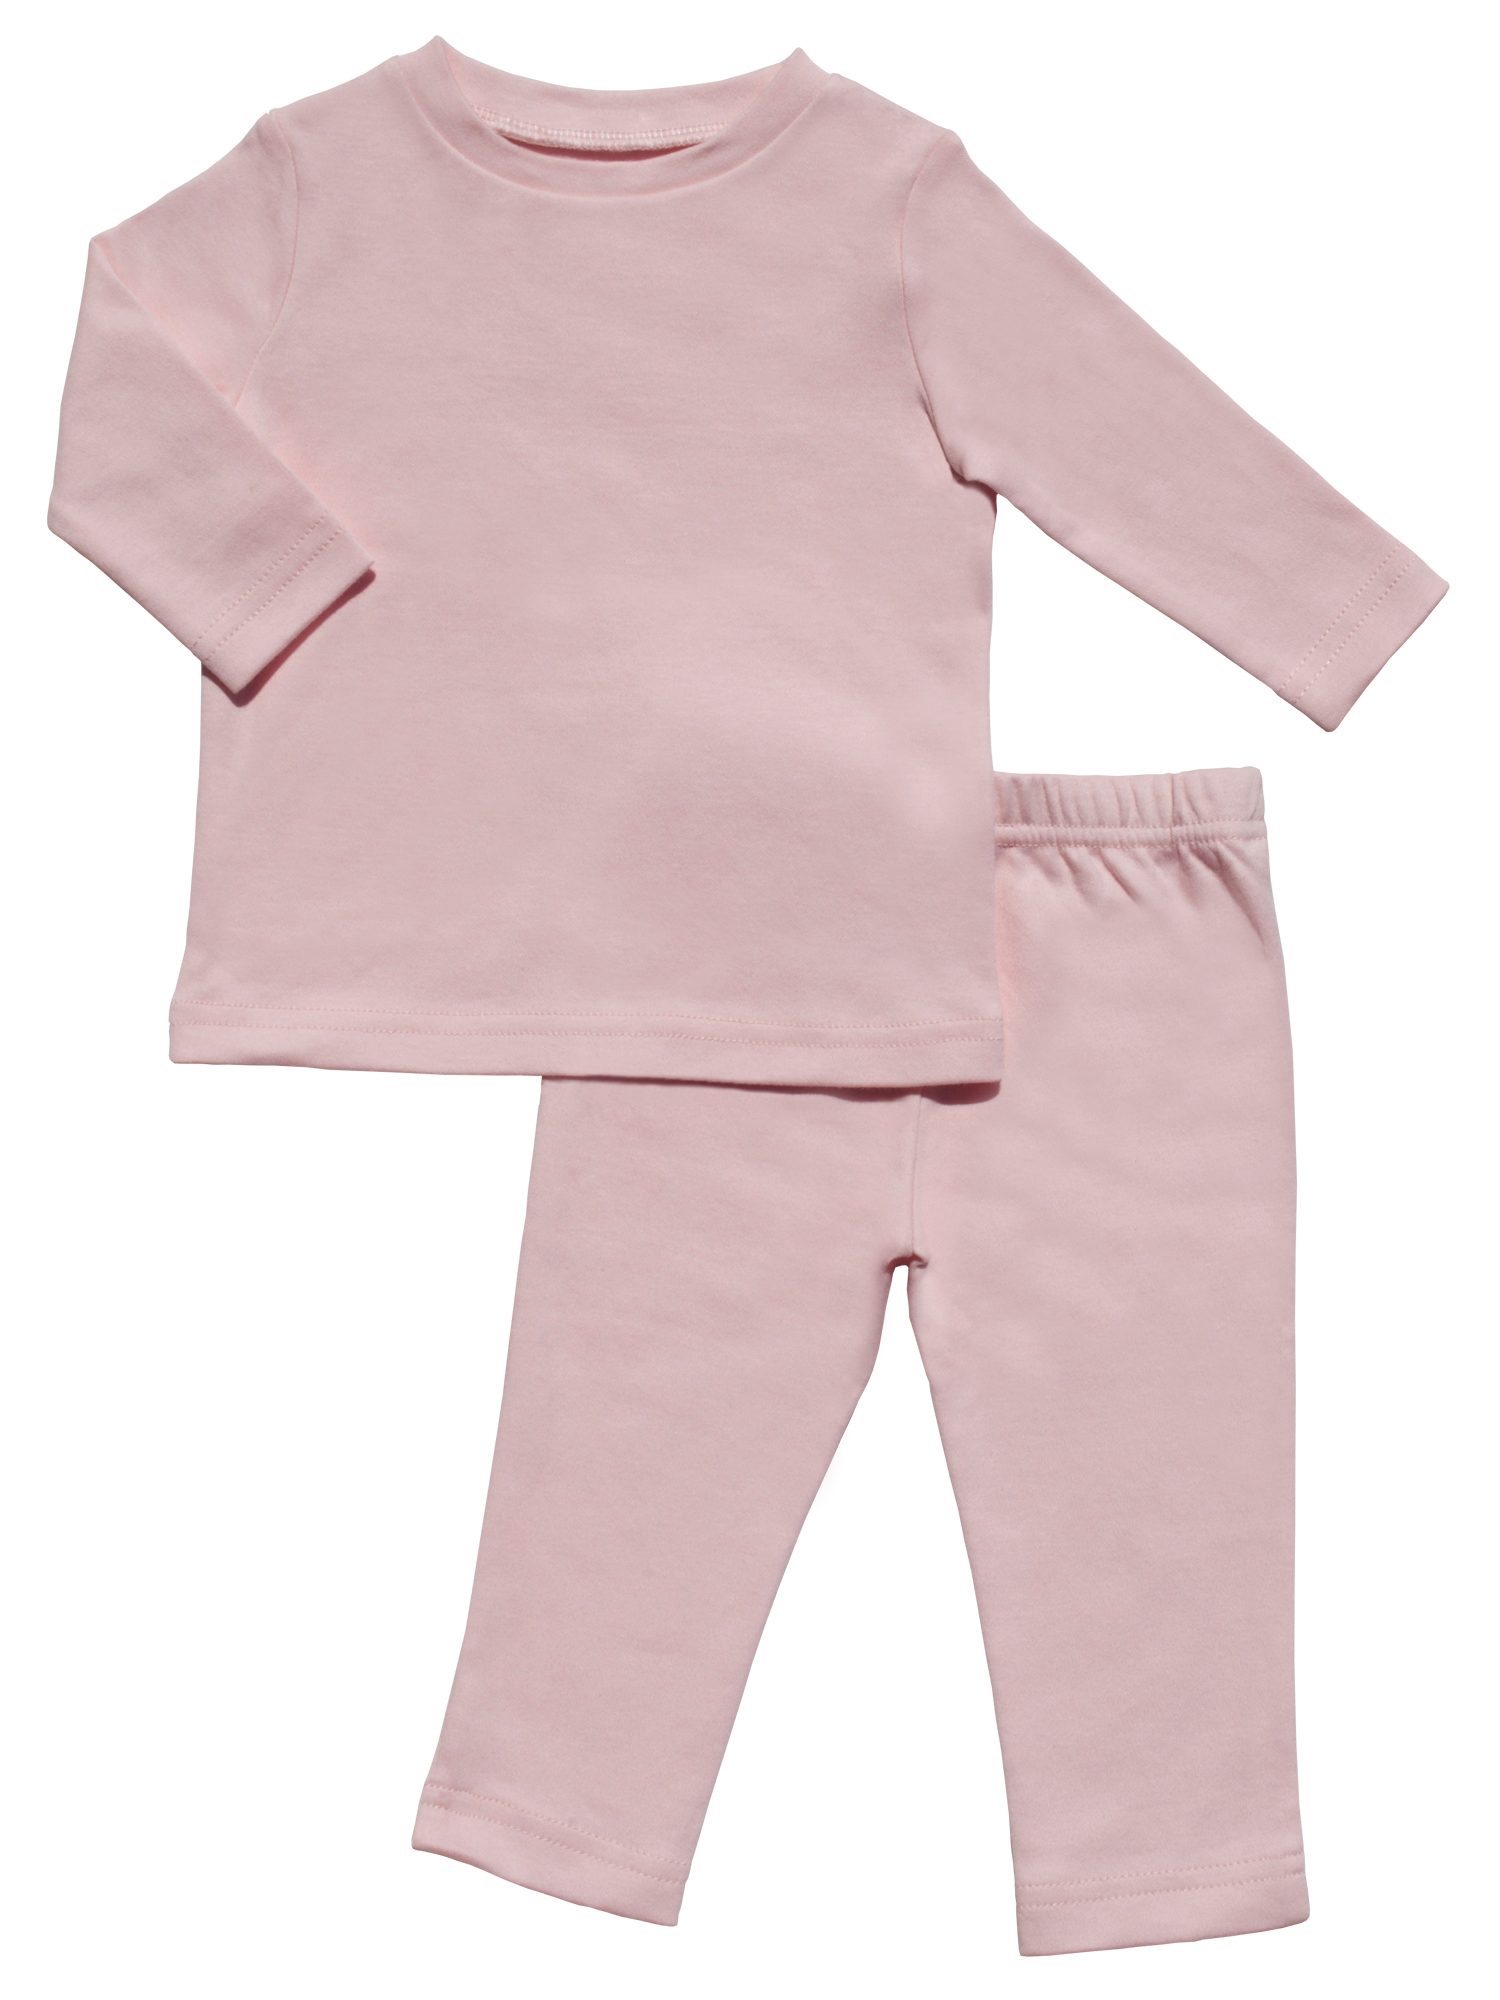 KidzStuff Baby Insect Repellent Shirt and Pants Set (Baby Girls)